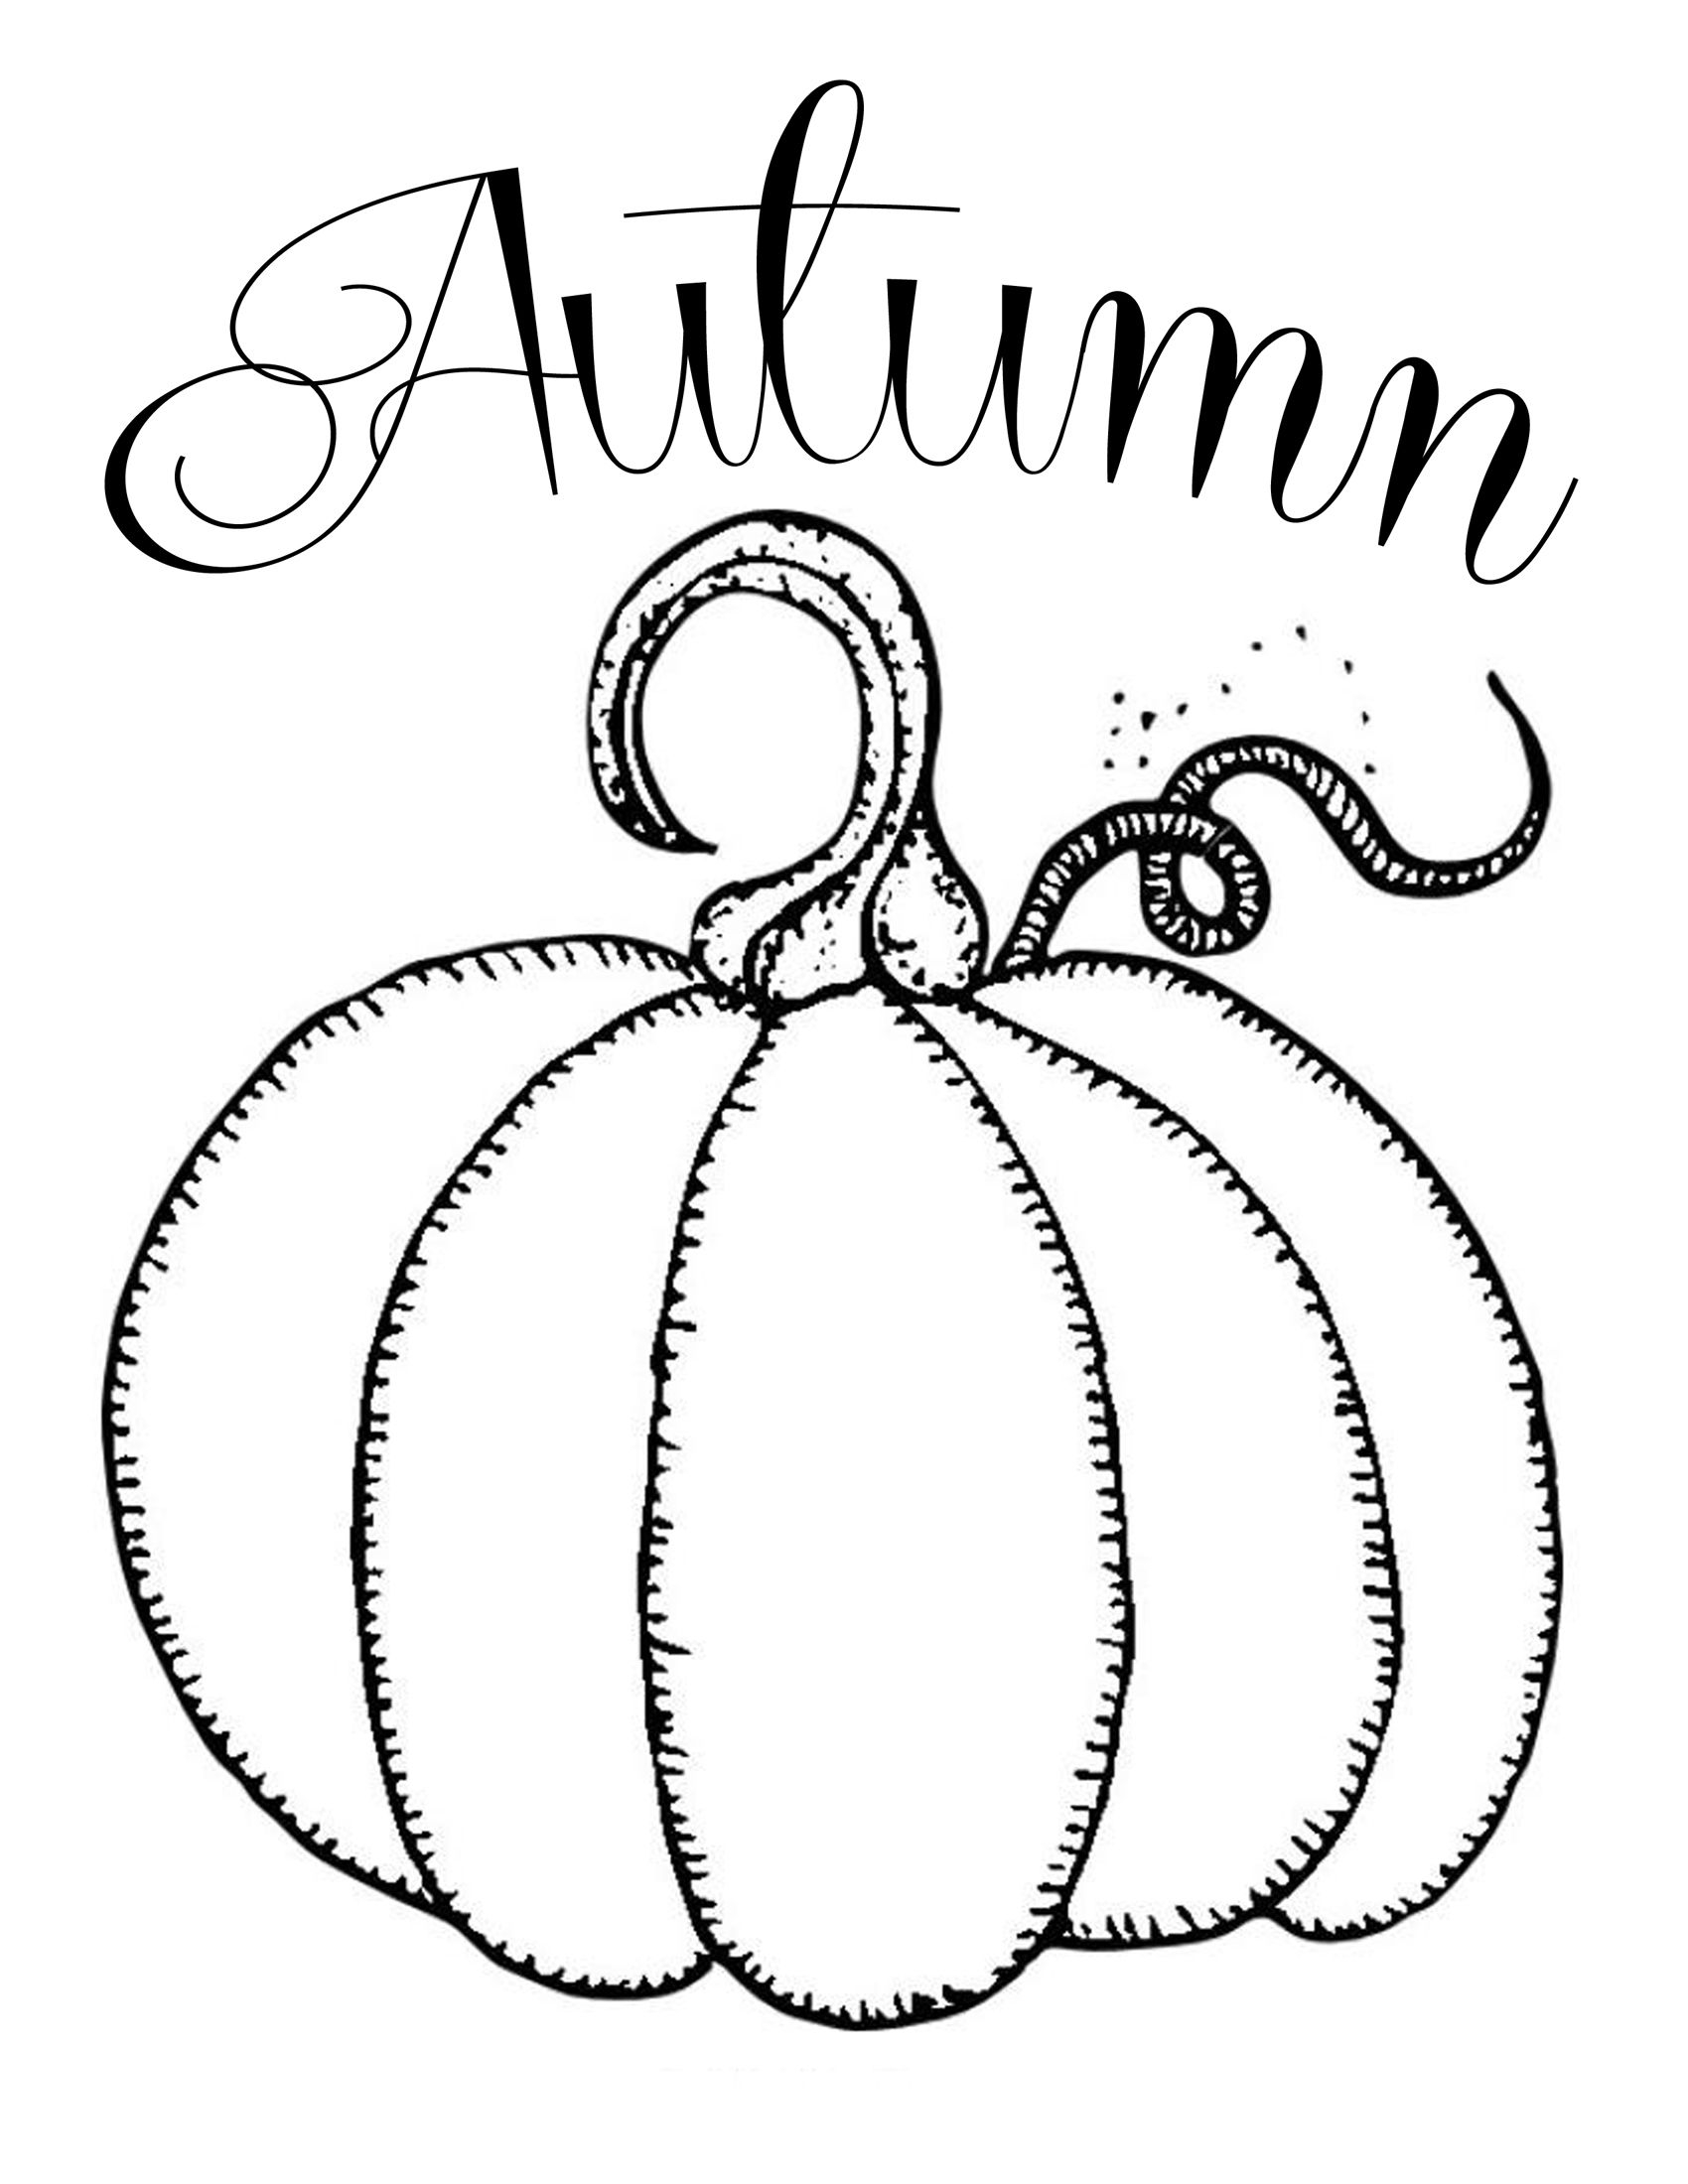 Fall Coloring Page Free Printables Chalkboard Autumn Pumpkin Fonts And New Printable